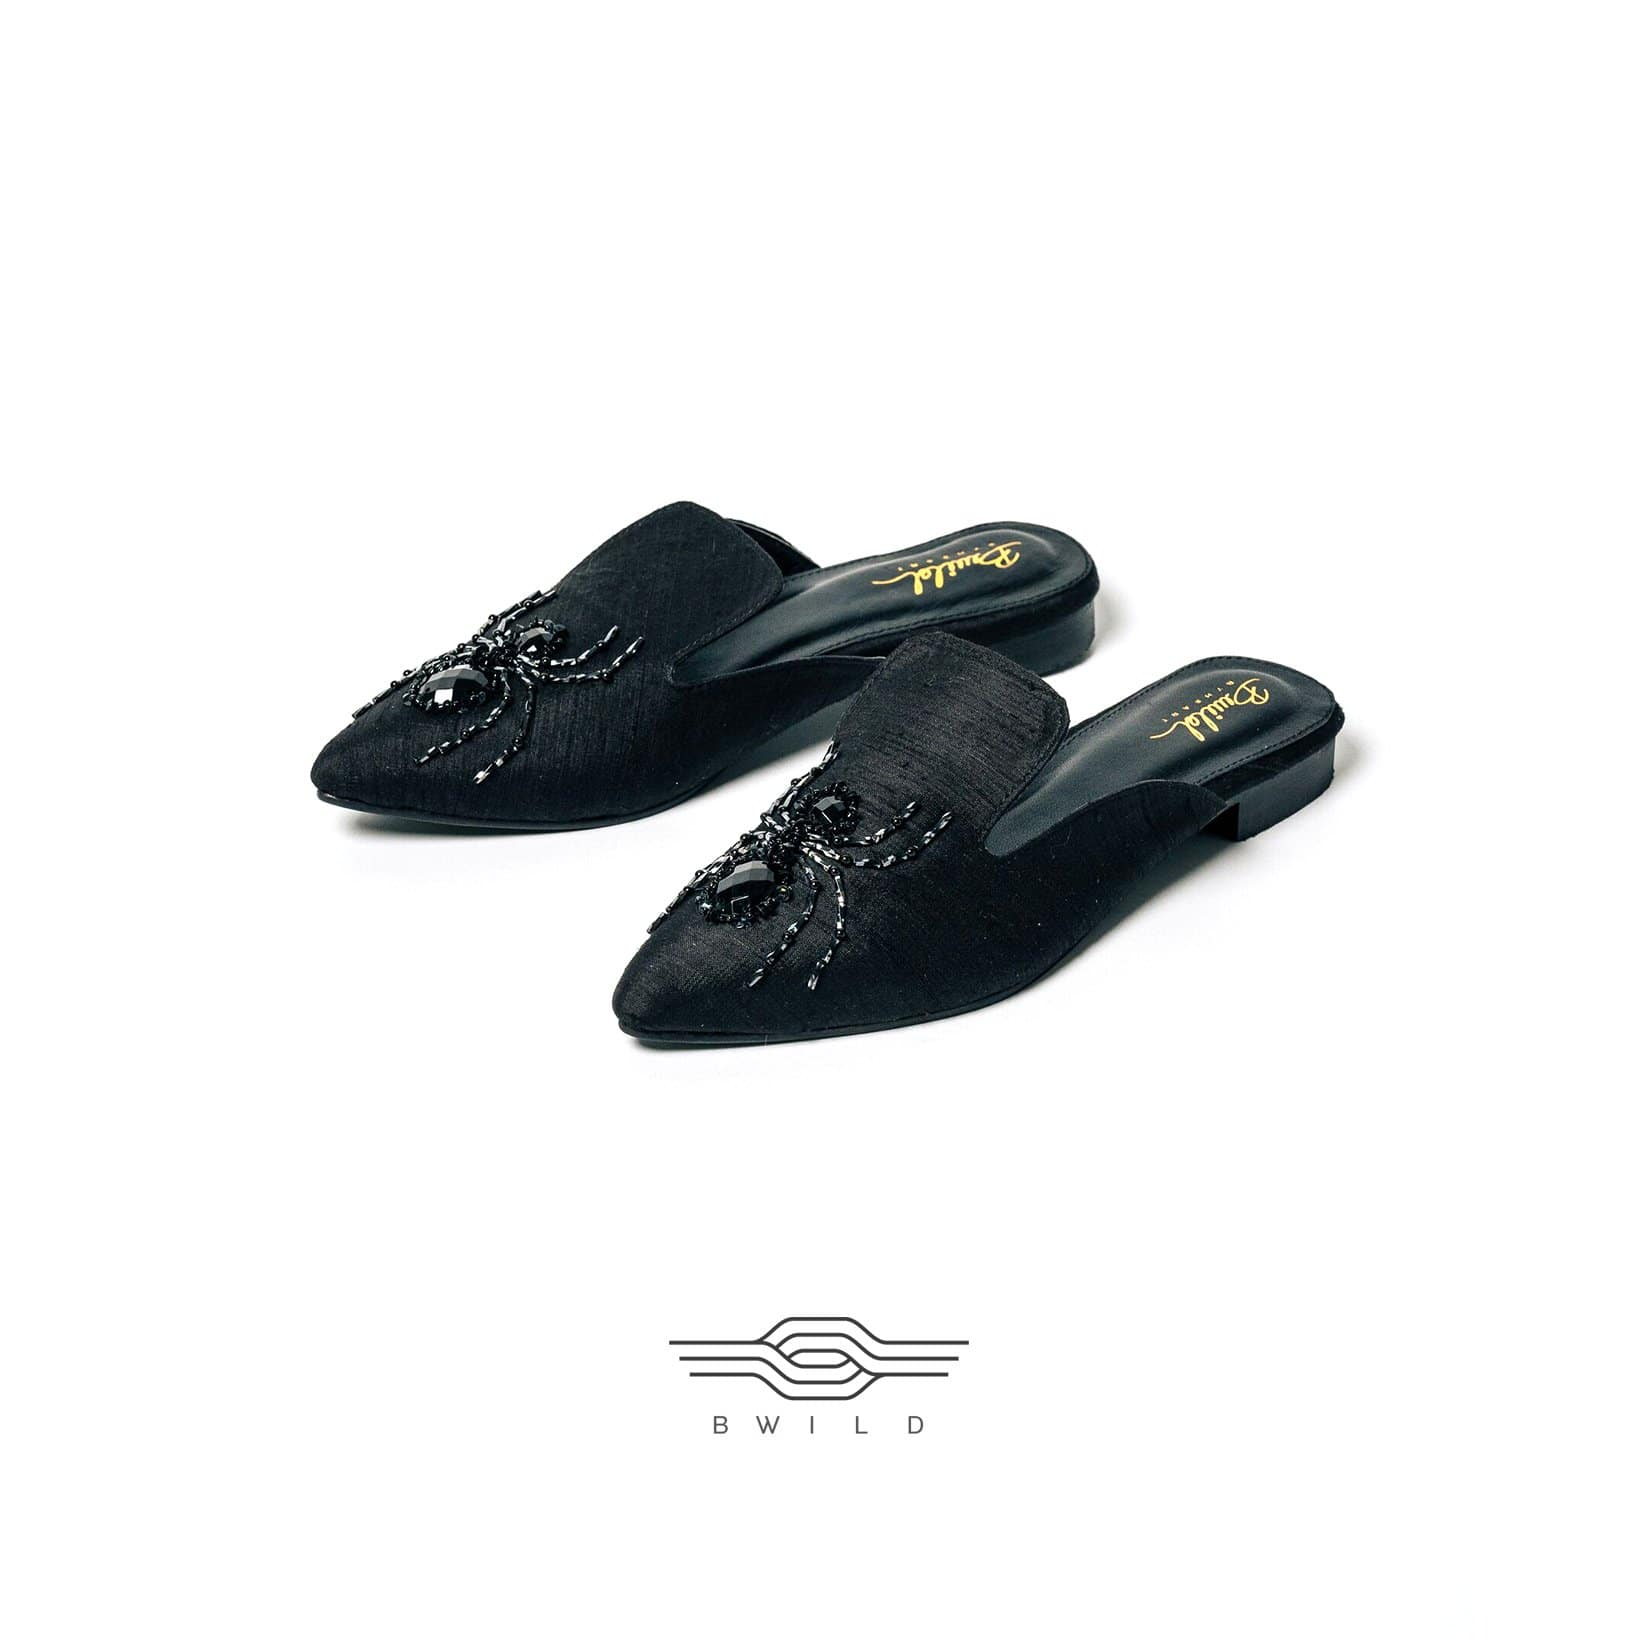 Wild in the city Mule Slippers - Black Spider - BWILD byHeart